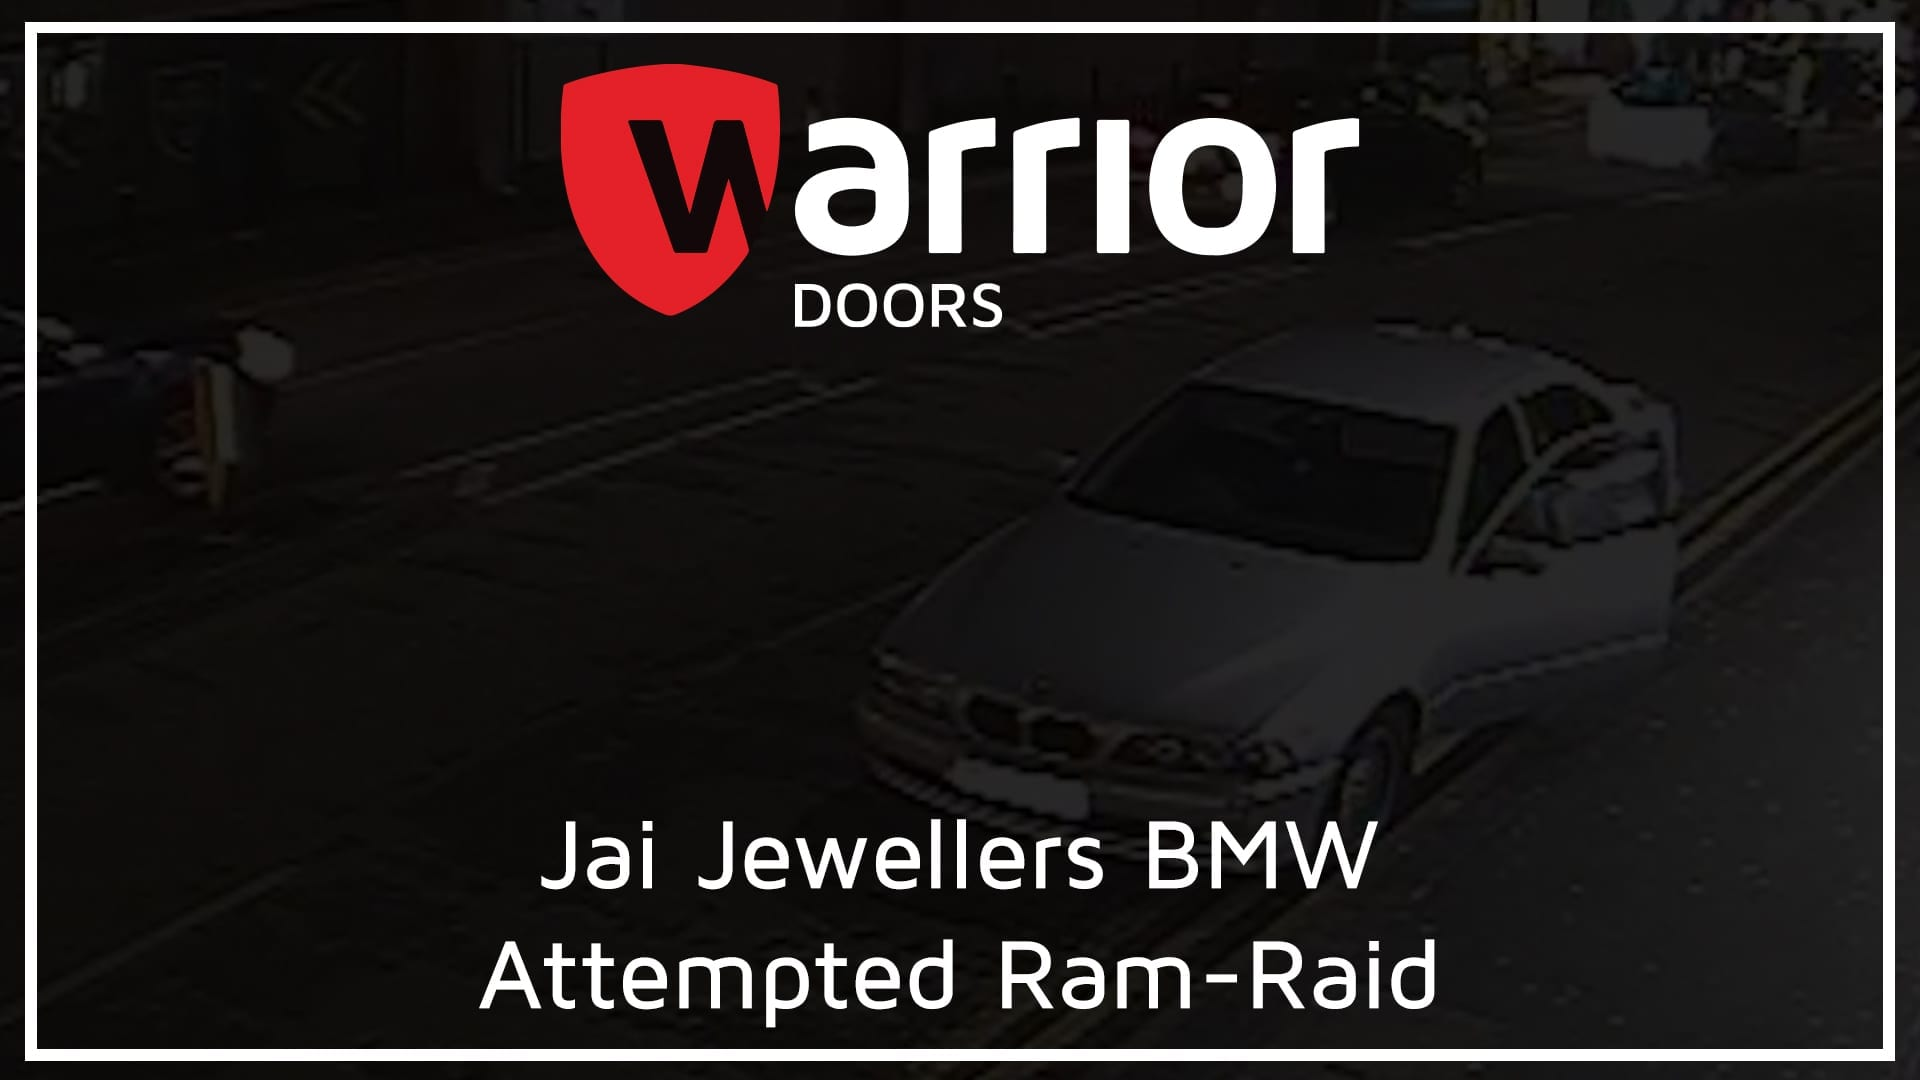 """BMW with an open door with Warrior Doors logo and text reading """"Jai Jewellers BMW Attempted Ram-Raid"""""""